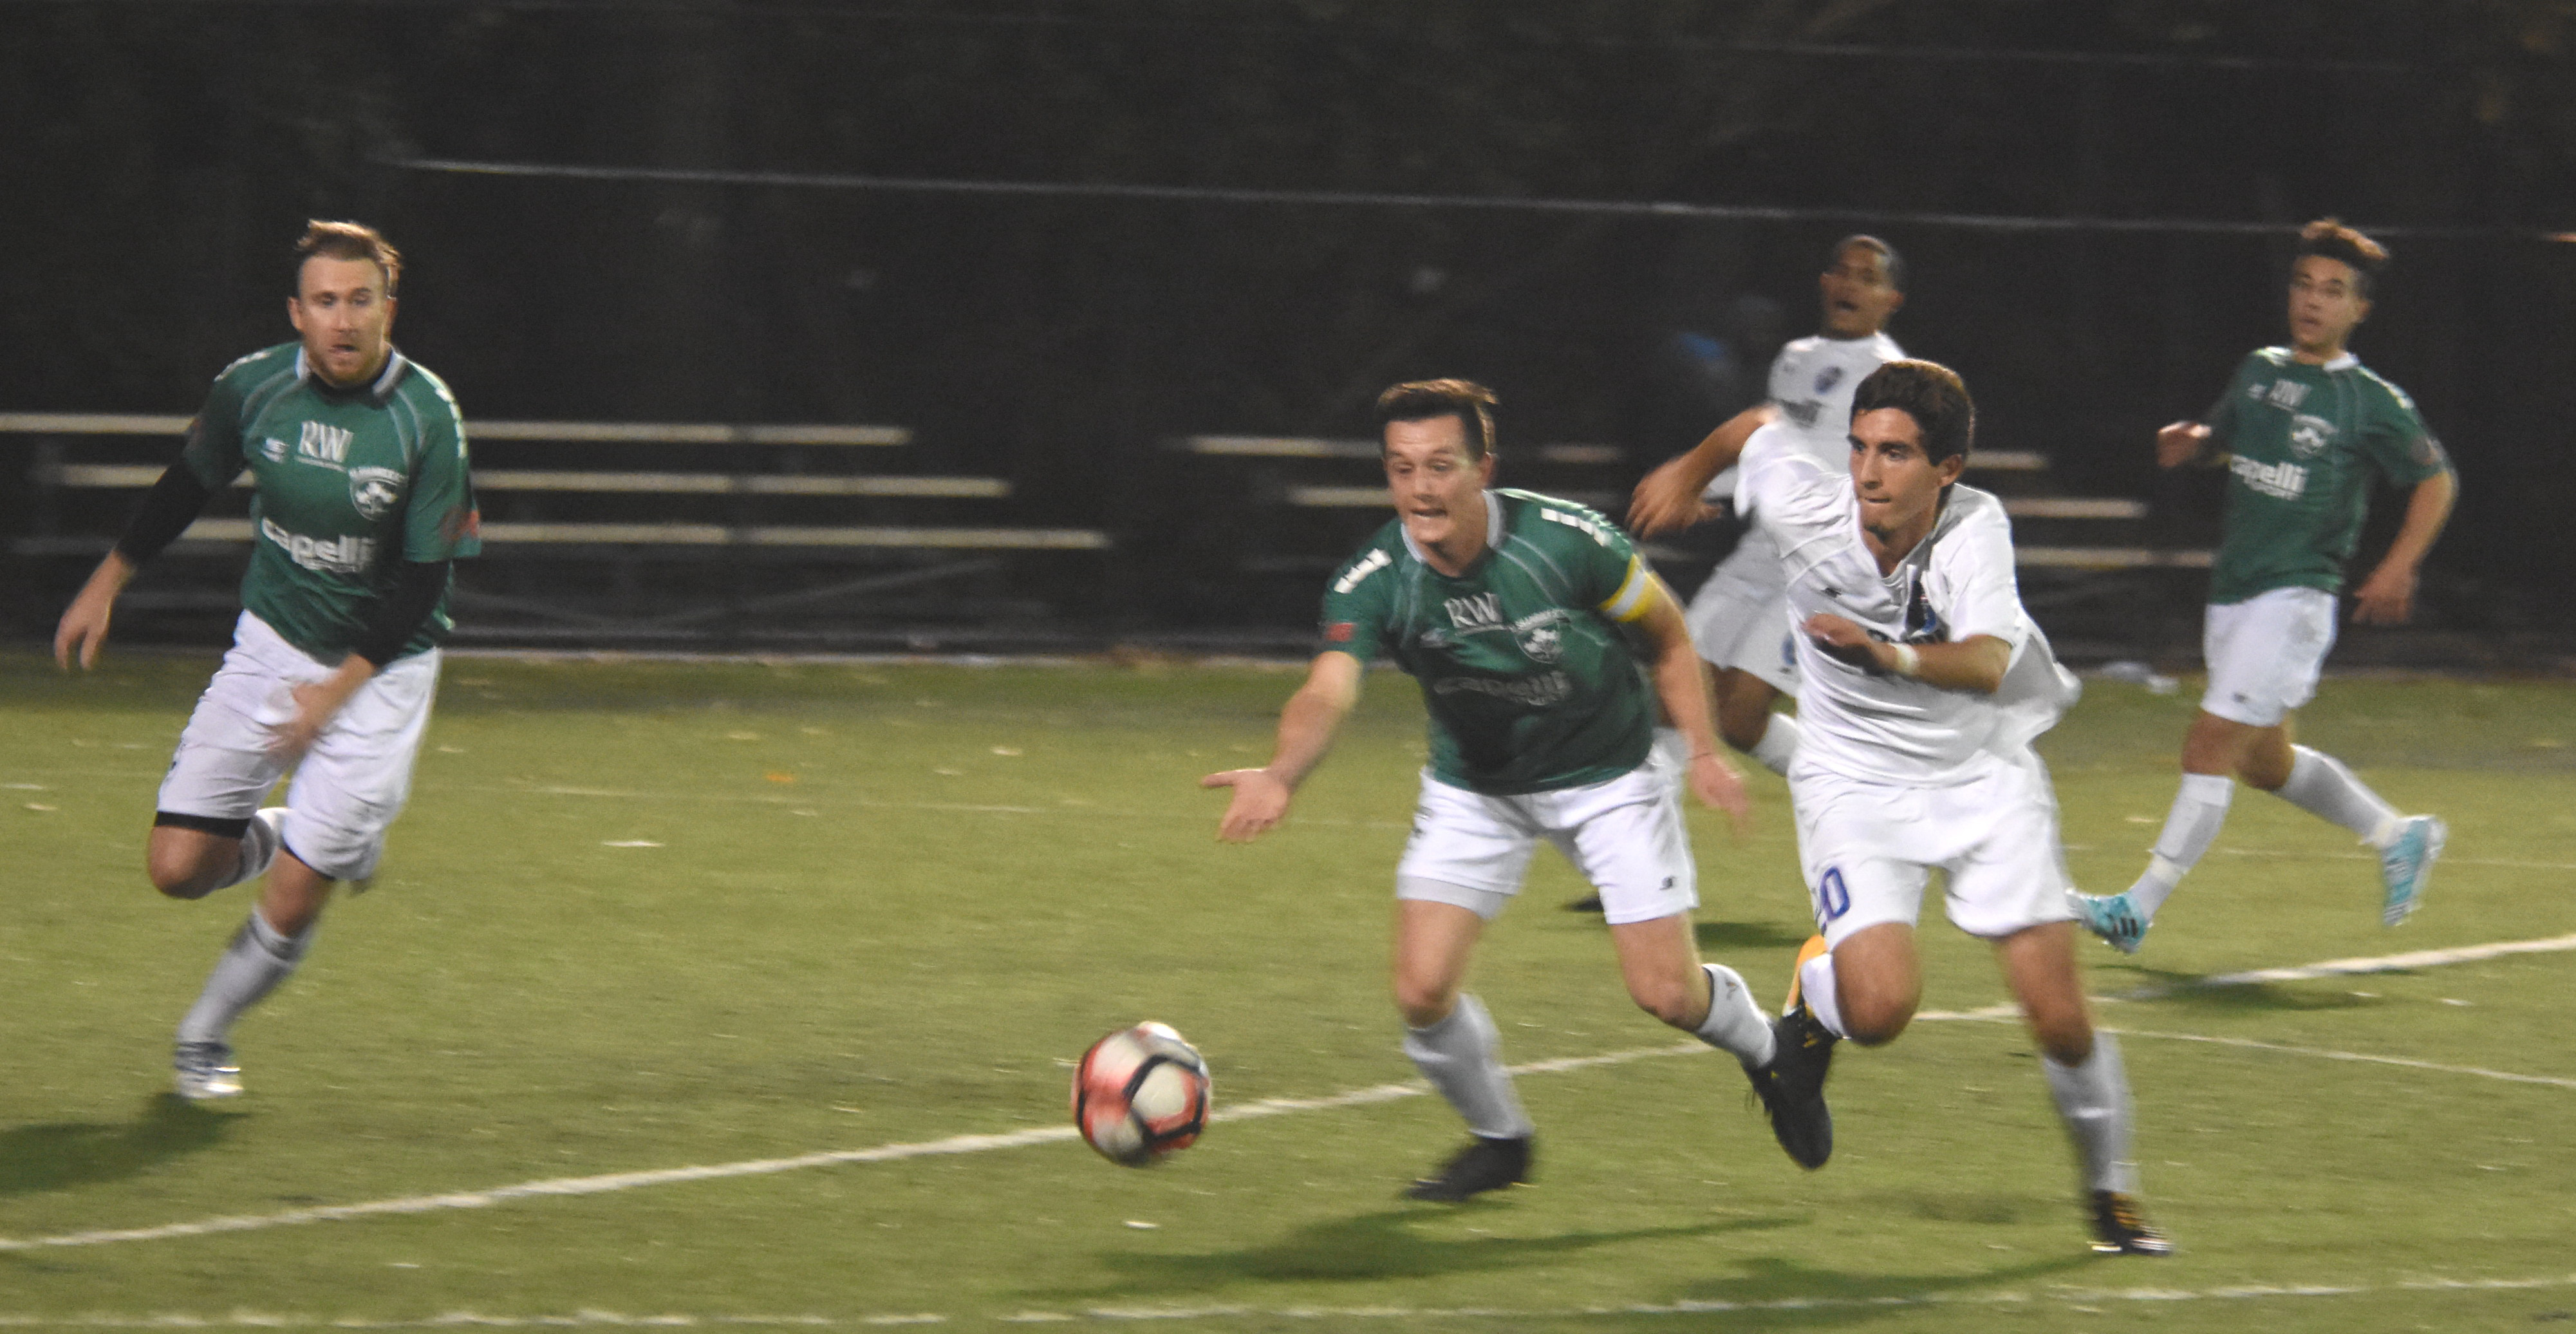 NY Greeks break Shamrocks' playoff hope with 3-1 win